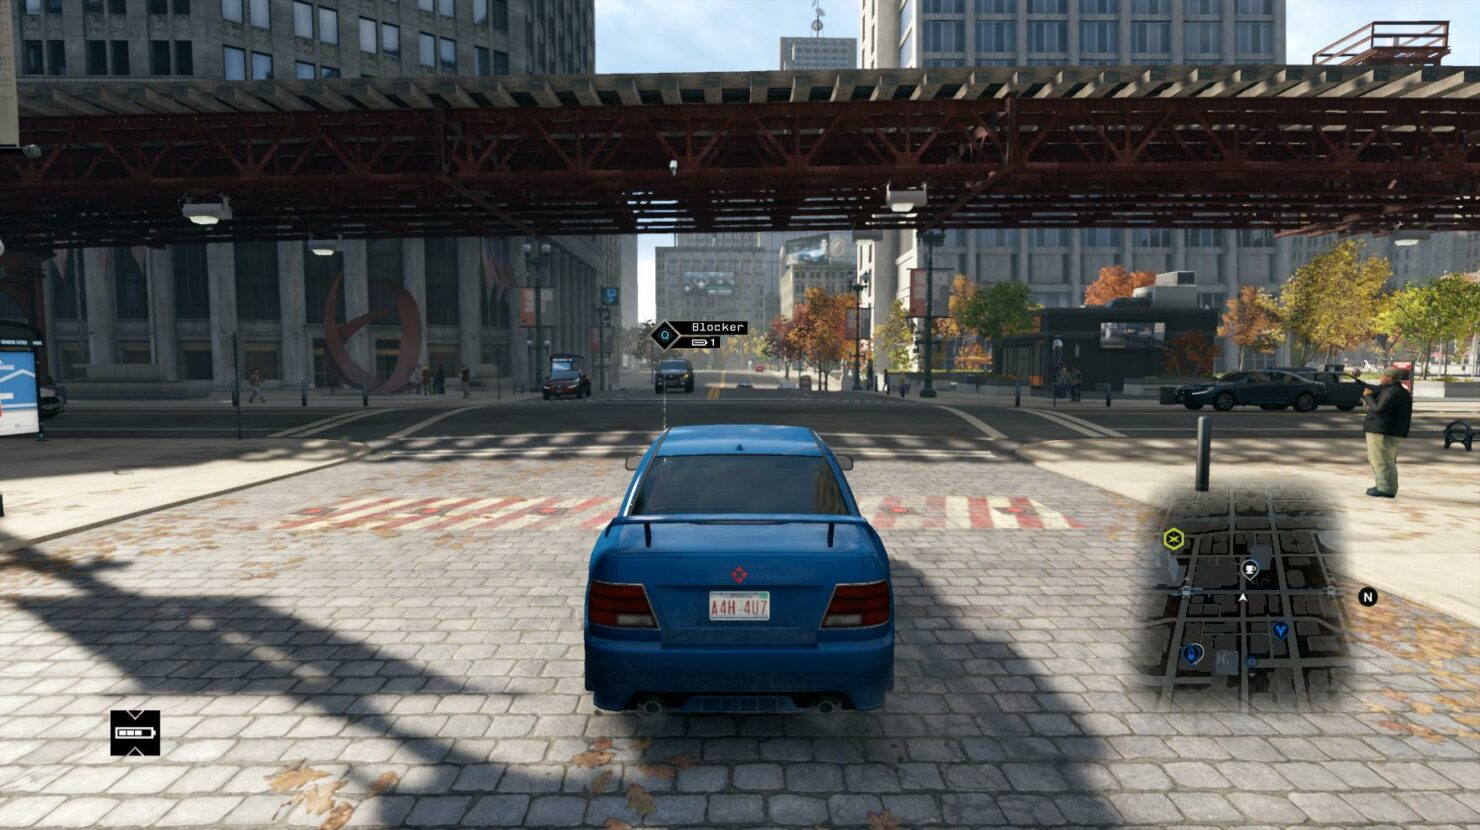 watch_dogs-2014-05-24-12-36-06-62